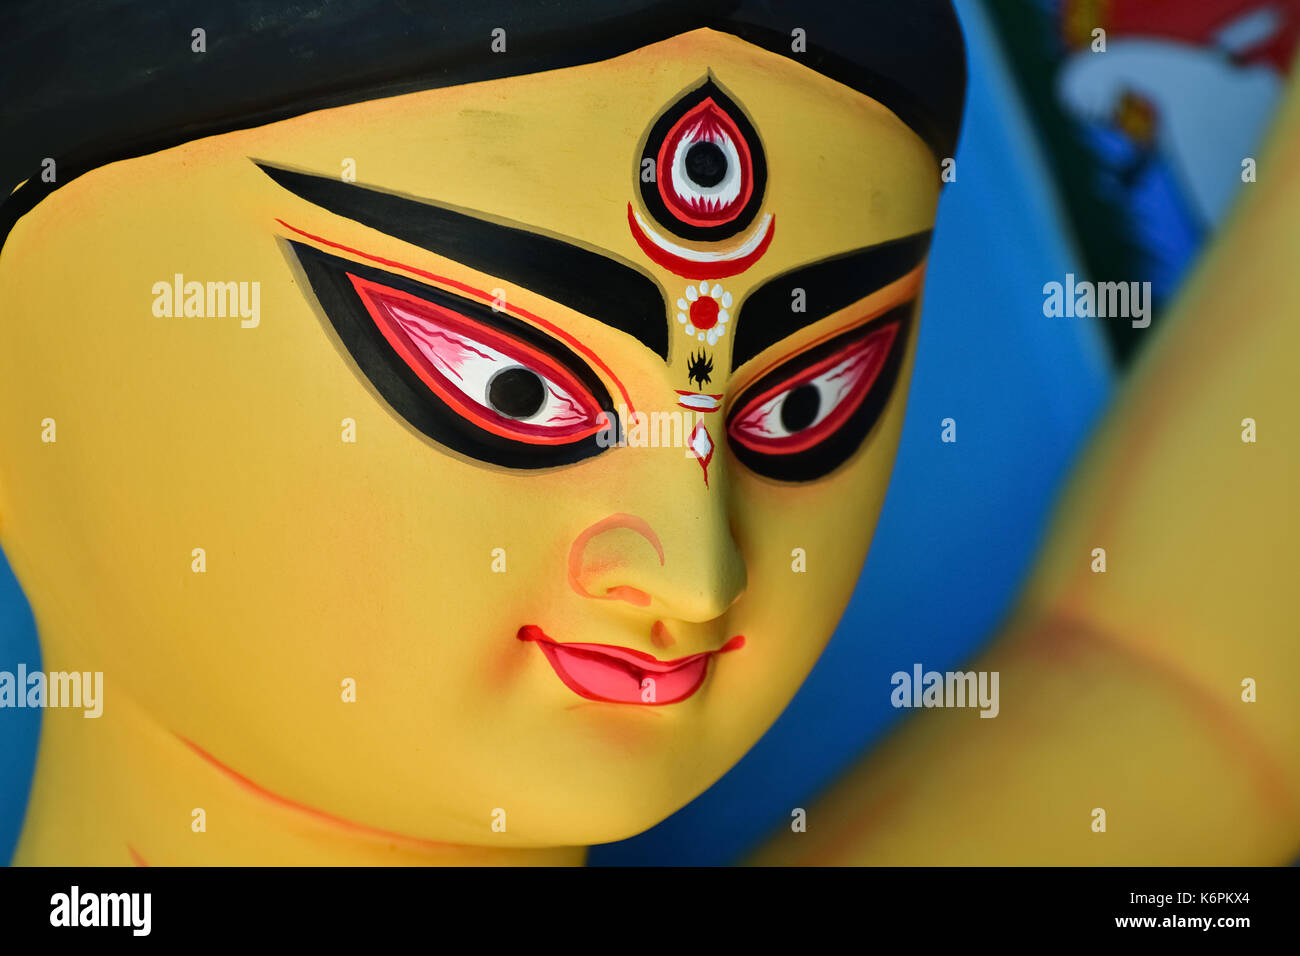 Goddess idols are being prepared with clay before festival. Idols being made for Durga Puja festival. Sculpture of goddess durga. - Stock Image